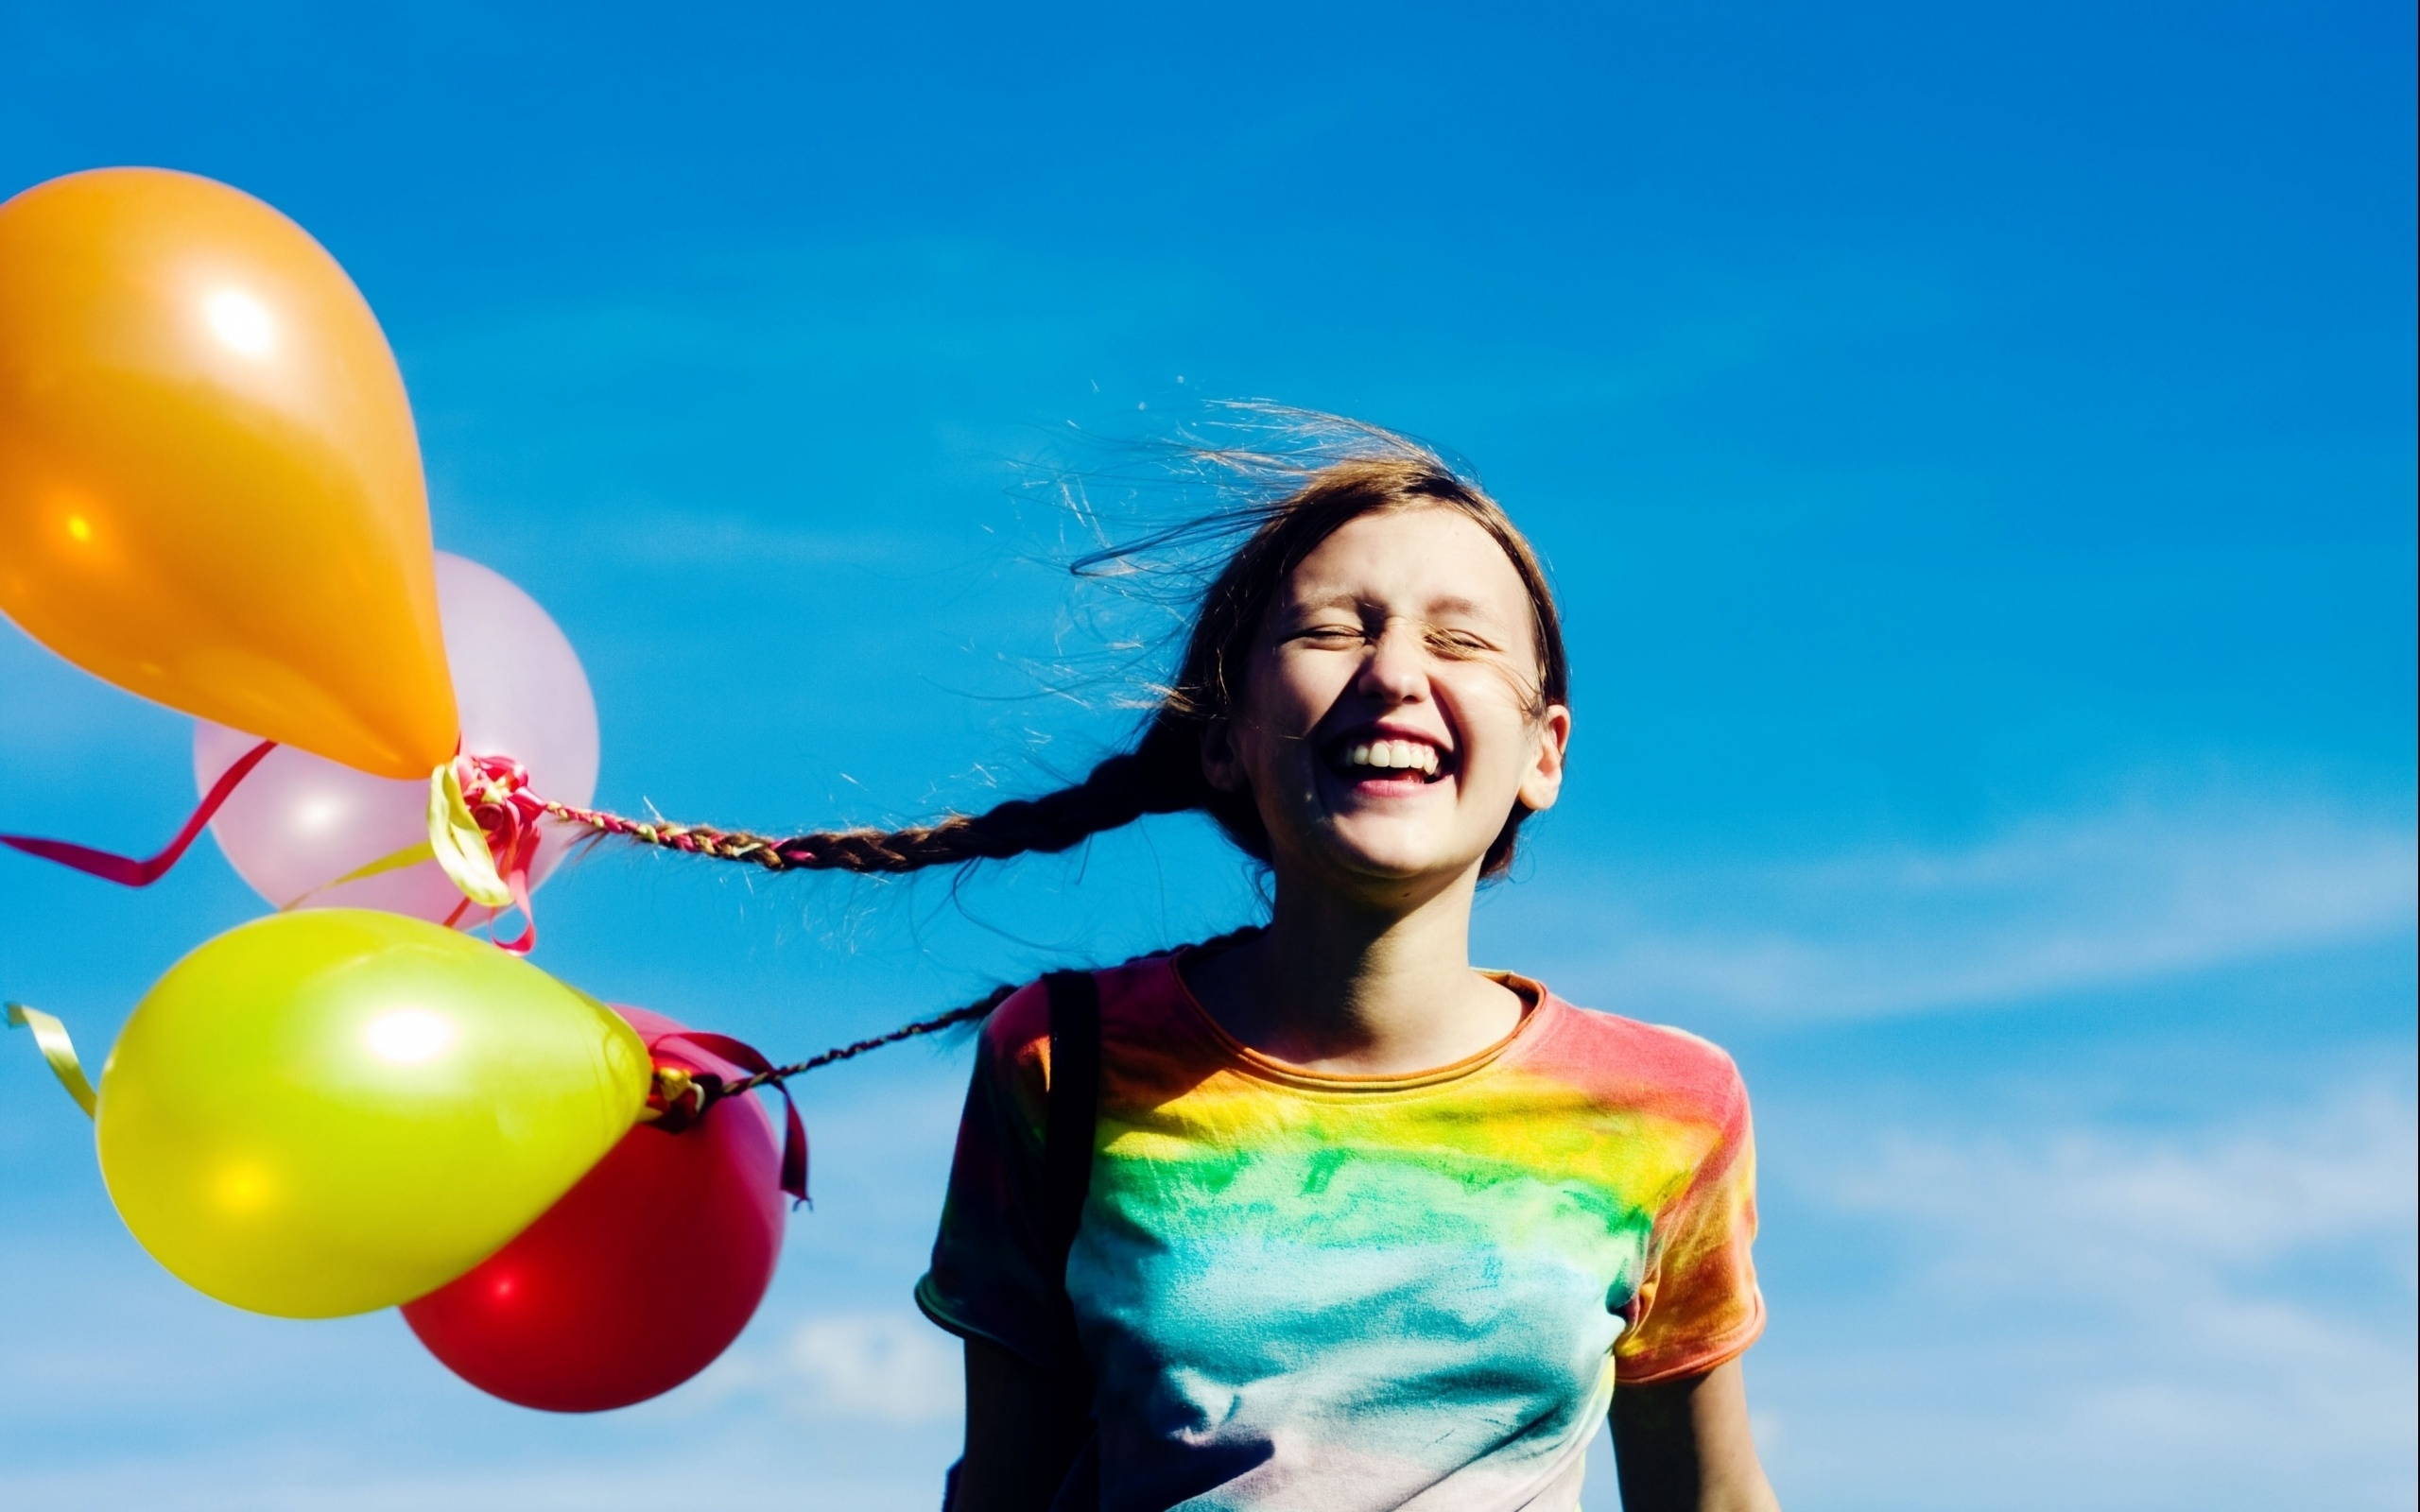 Wallpaper Happy Girl With Balloons 2560x1600 Hd Picture Image